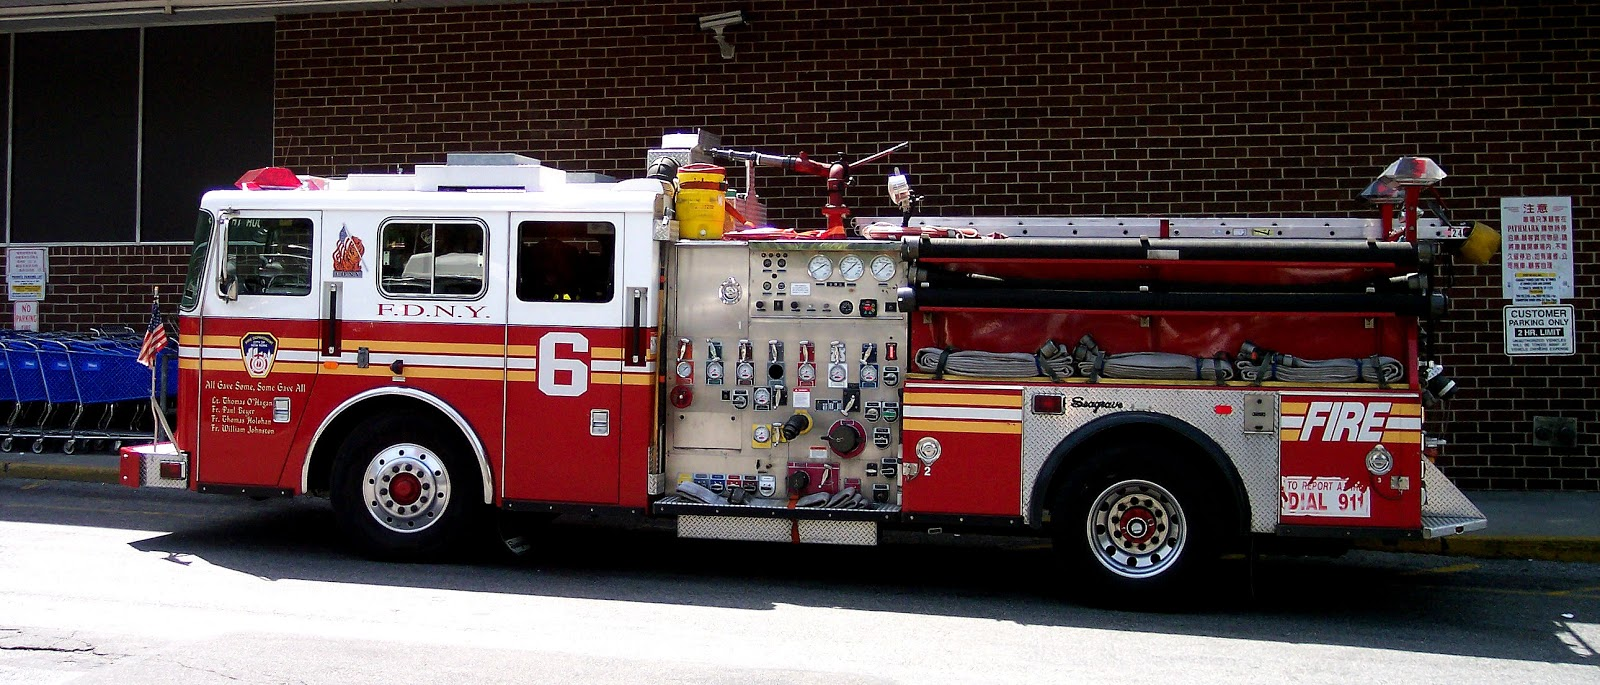 A fdny engine painted in the traditional fire engine red source